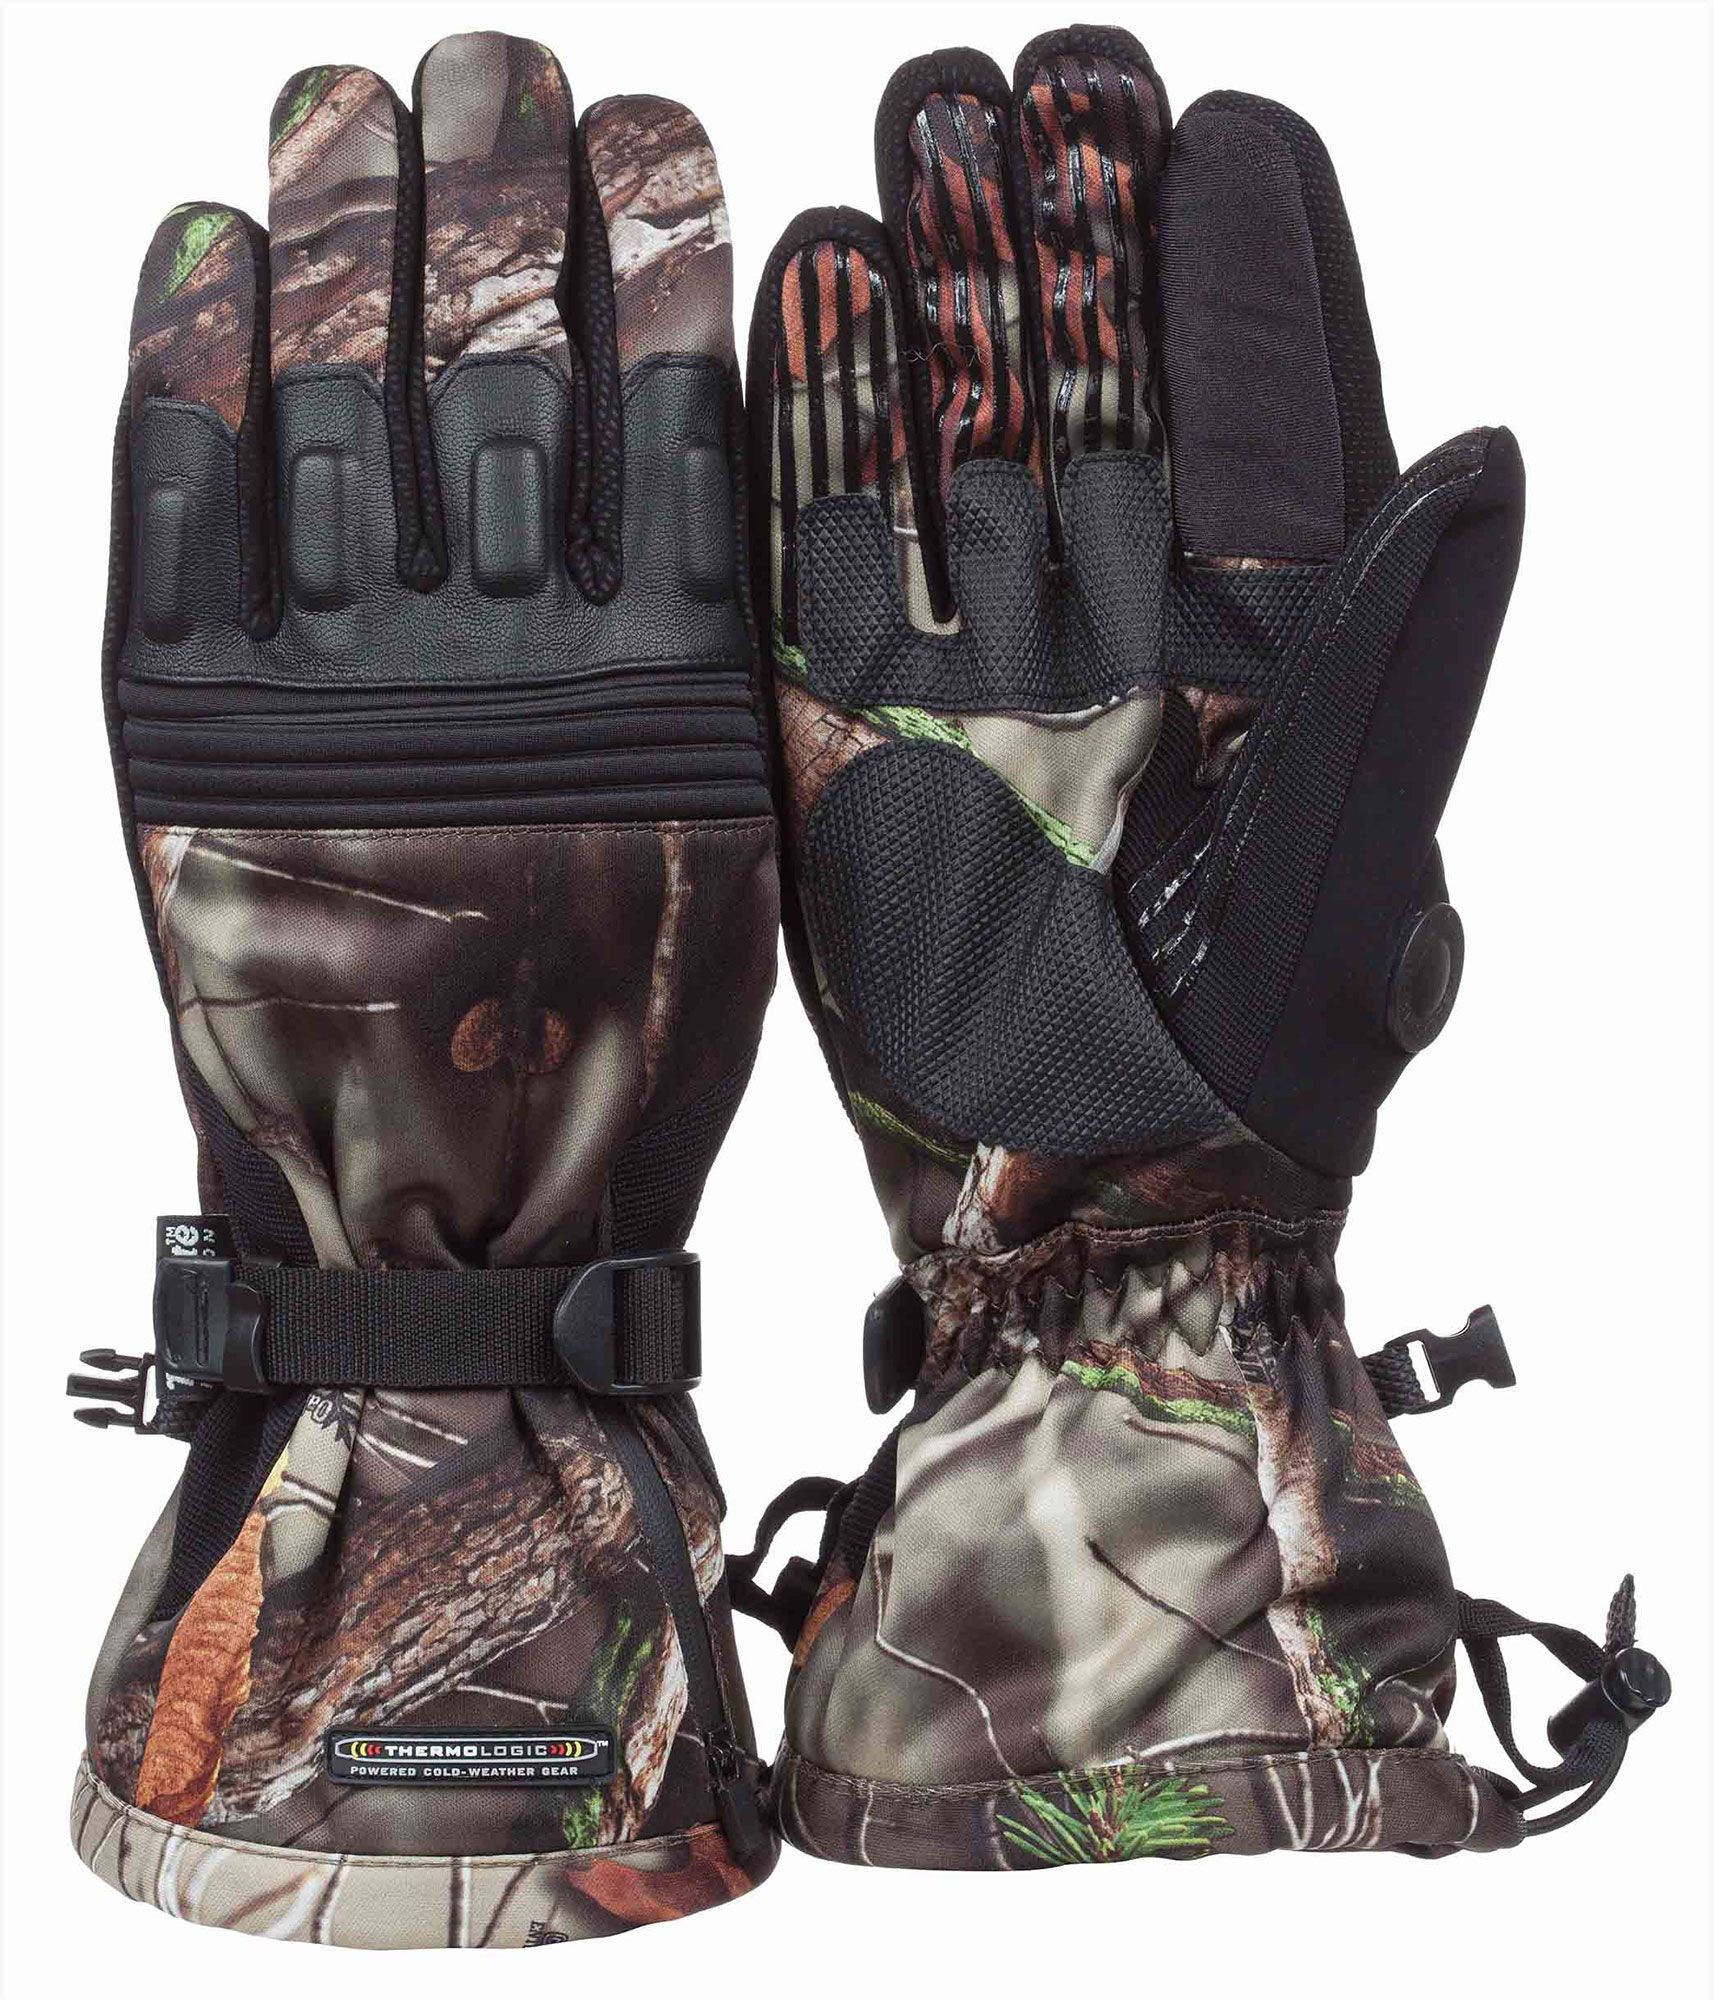 7b613a8a4f1be Thermologic Men's Heated Hunting Gloves